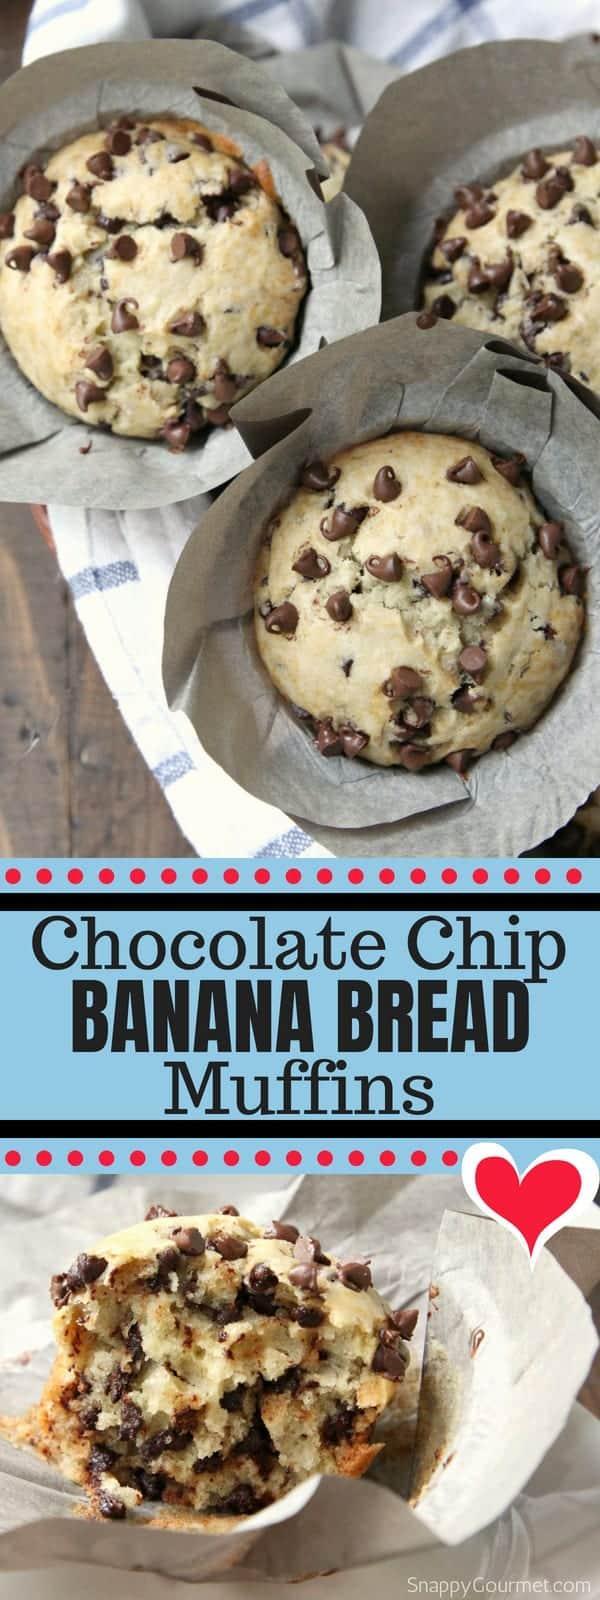 Chocolate Chip Banana Bread Muffins recipe, the best from scratch banana muffins loaded with chocolate chips! Super moist and easy to make! #BananaBread #Muffins #Breakfast #SnappyGourmet #ChocolateChips #Snack #Dessert #Homemade #FromScratch #Banana #Bread